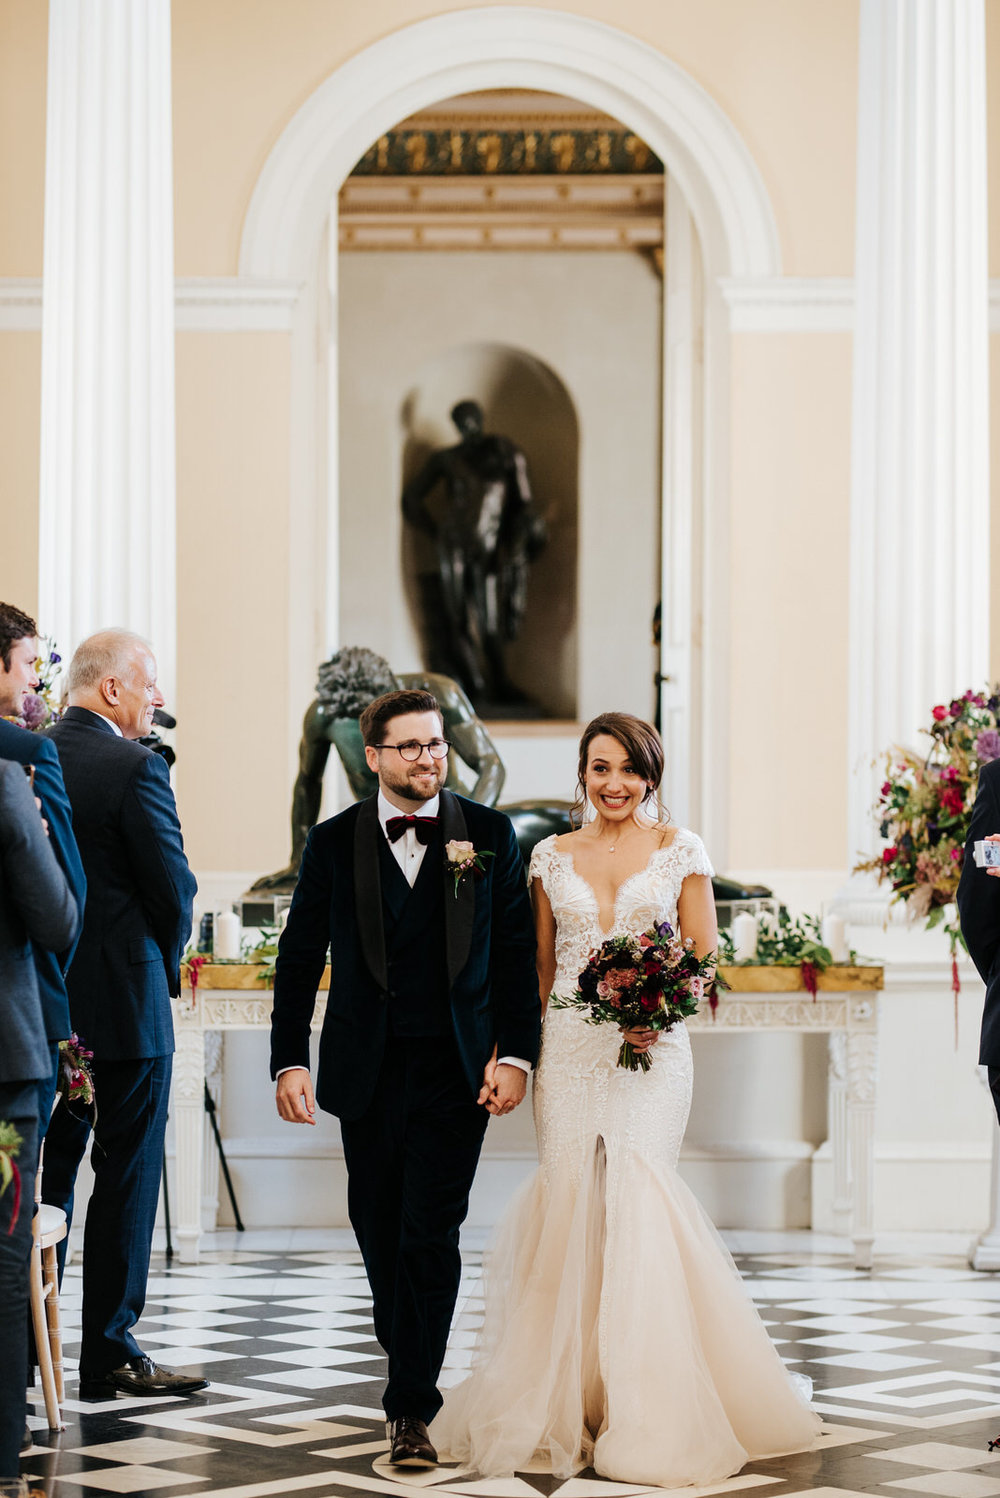 Bride and groom exit down aisle as a married couple